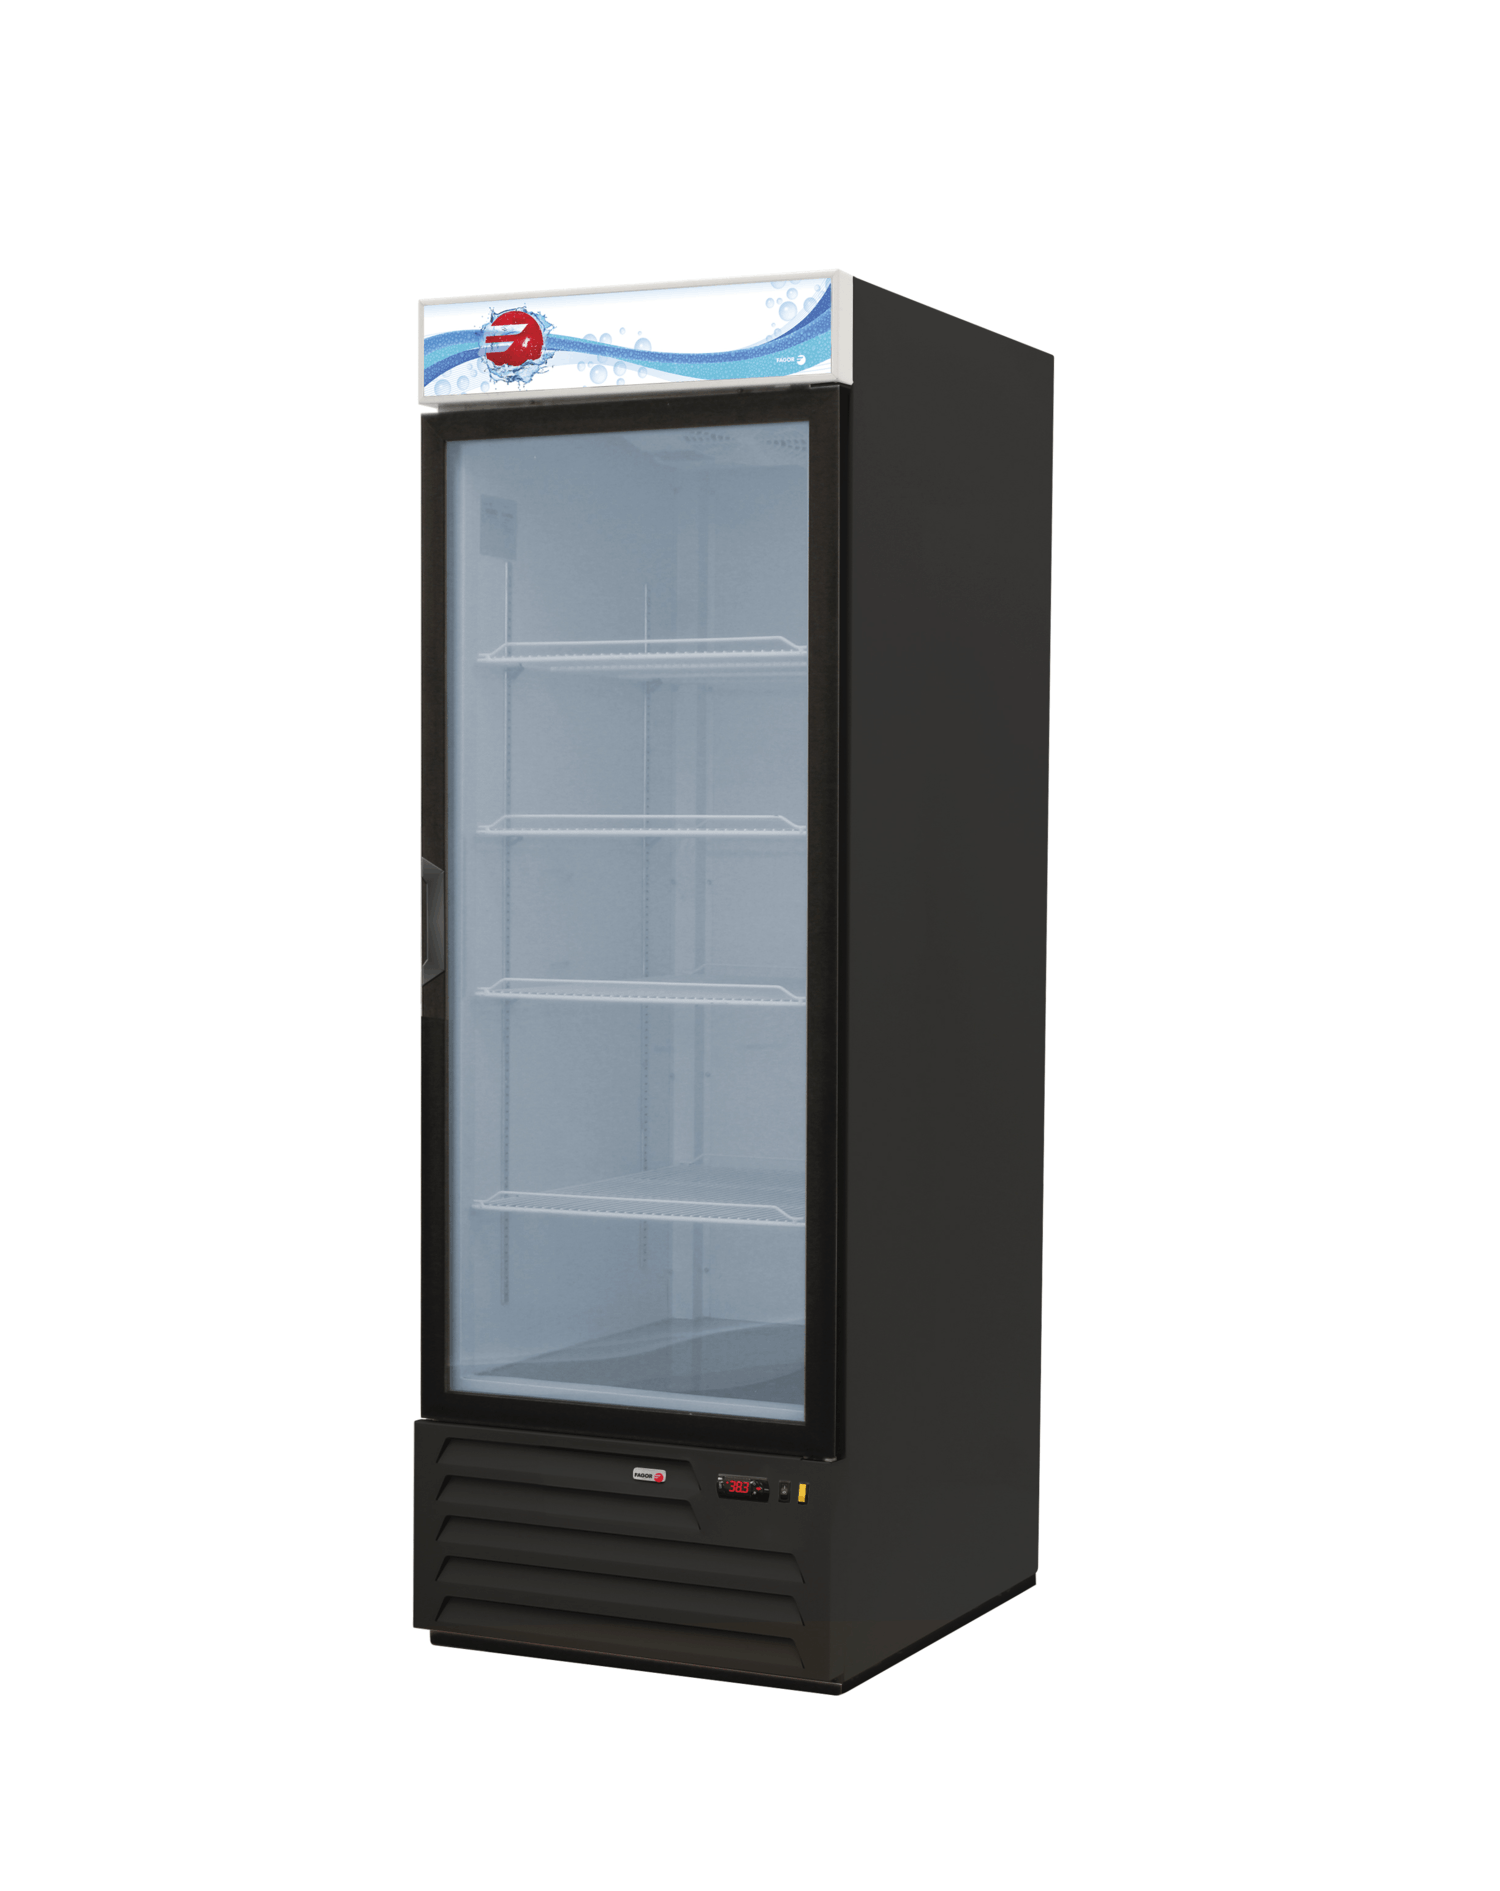 Single glass door refrigerator fagor 23 cu ft fmd 23 for 1 door chiller